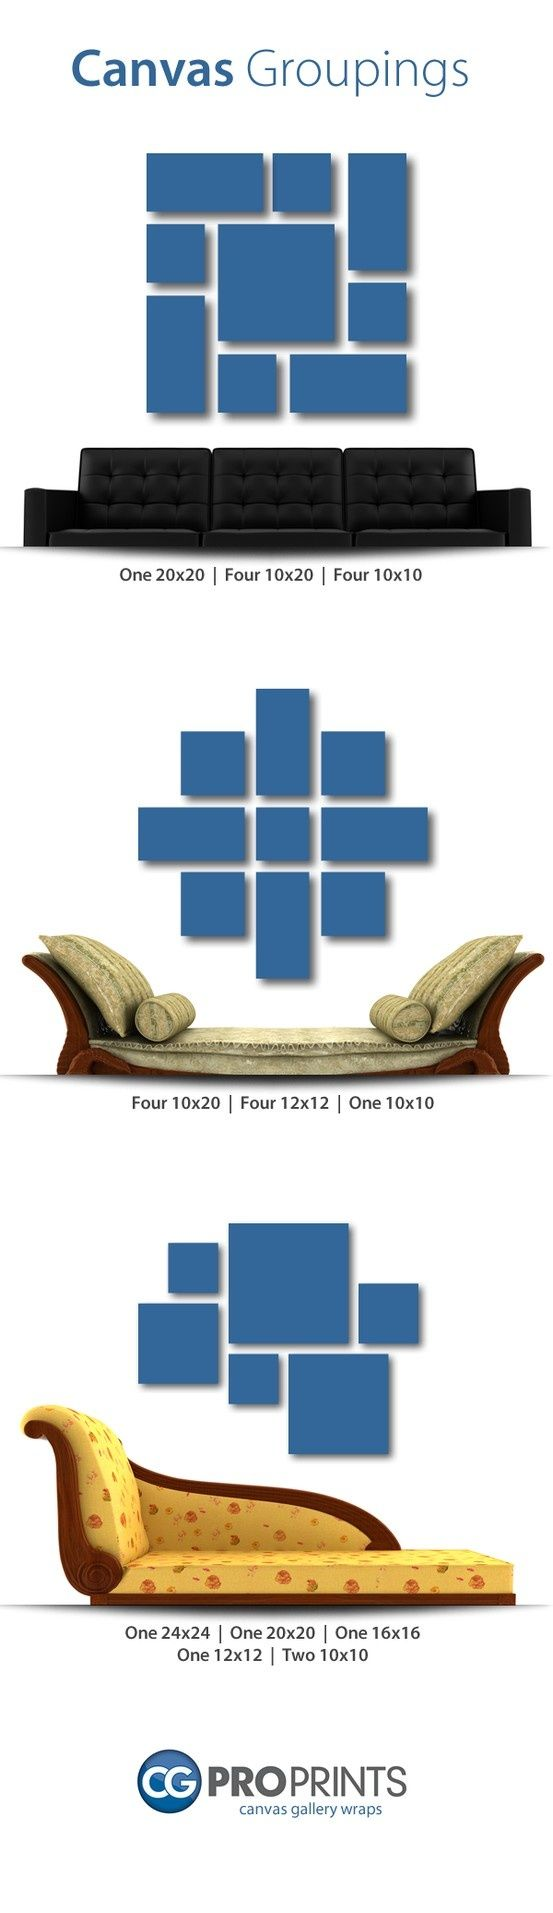 See what kind of canvas groupings go best with your room and furniture!